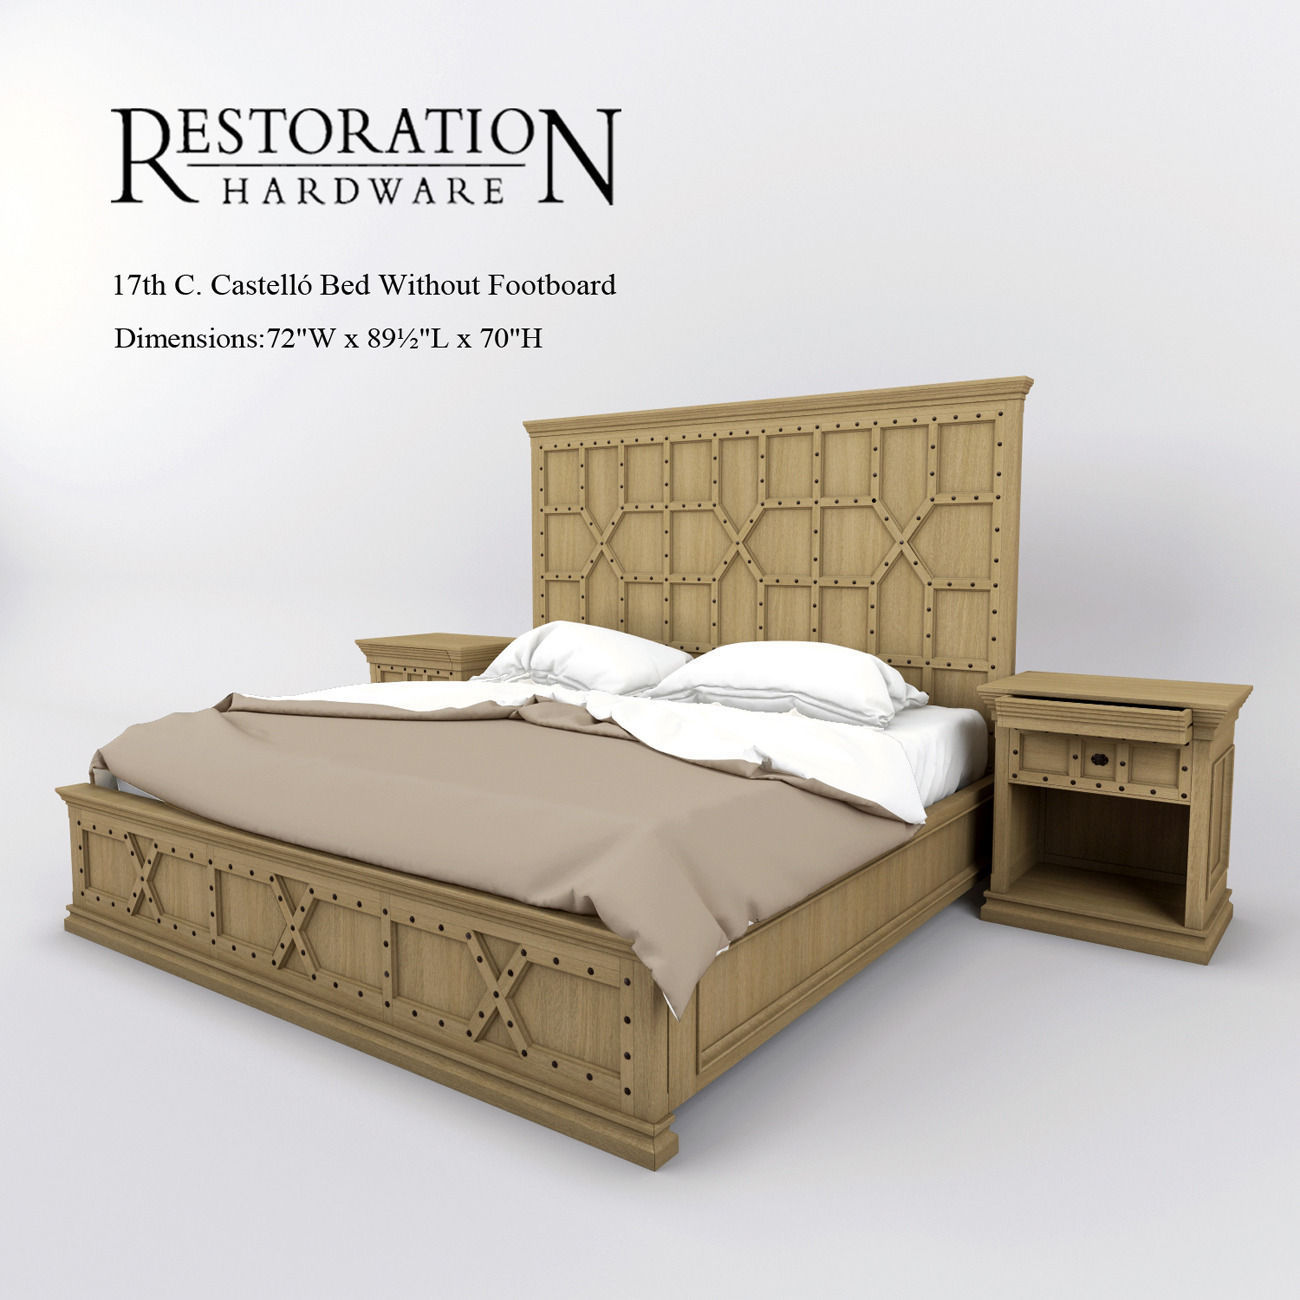 Restoration Hardware 17th C Castello Bed Without Footboard 3D model ...